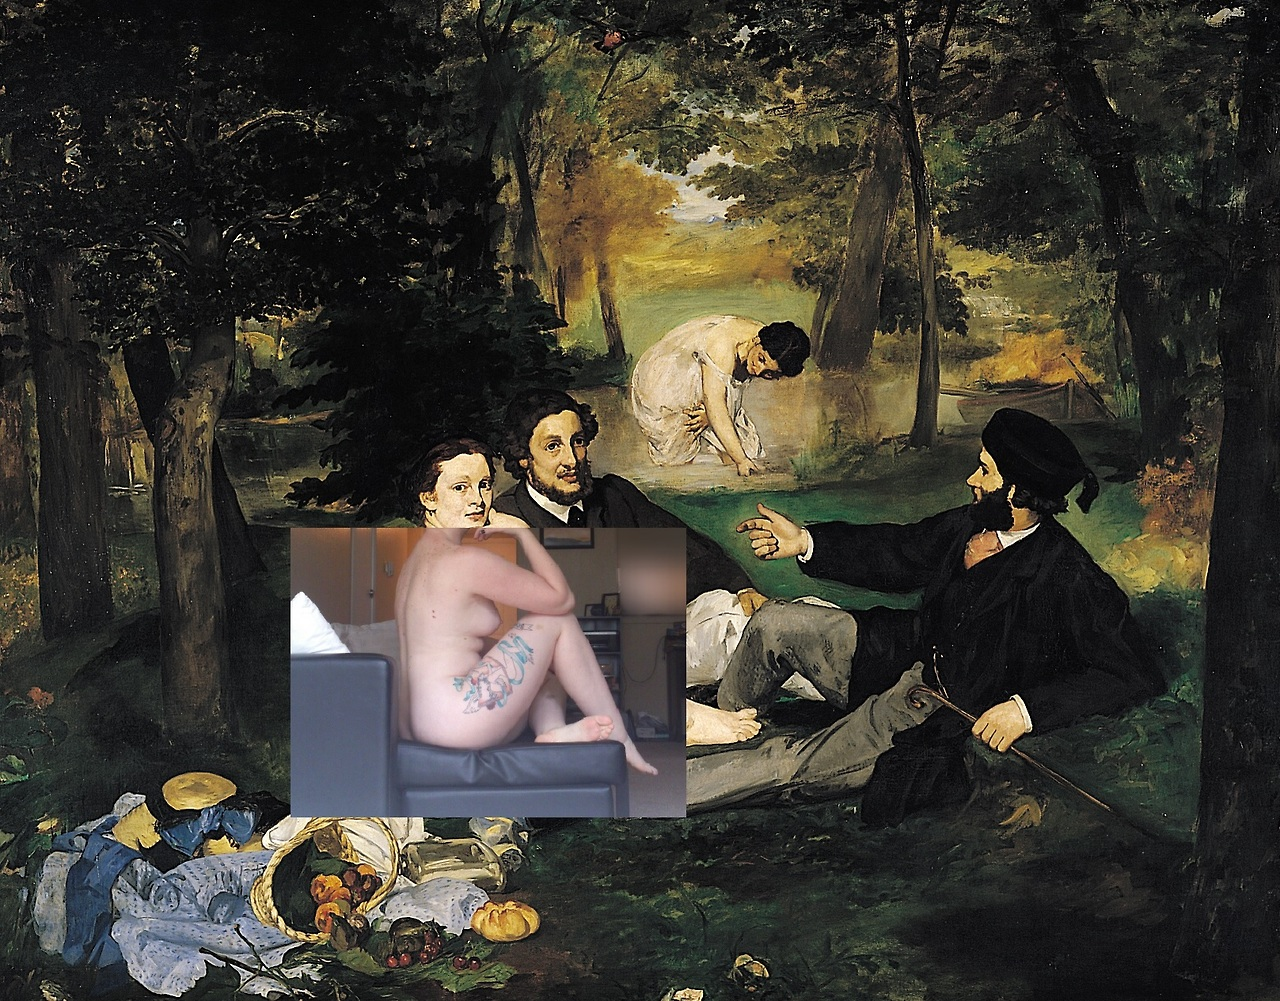 camgirls-project-in-progress-2013-Edouard-Manet-Luncheon-on-the-Grass-1863-X-misswaywardheart